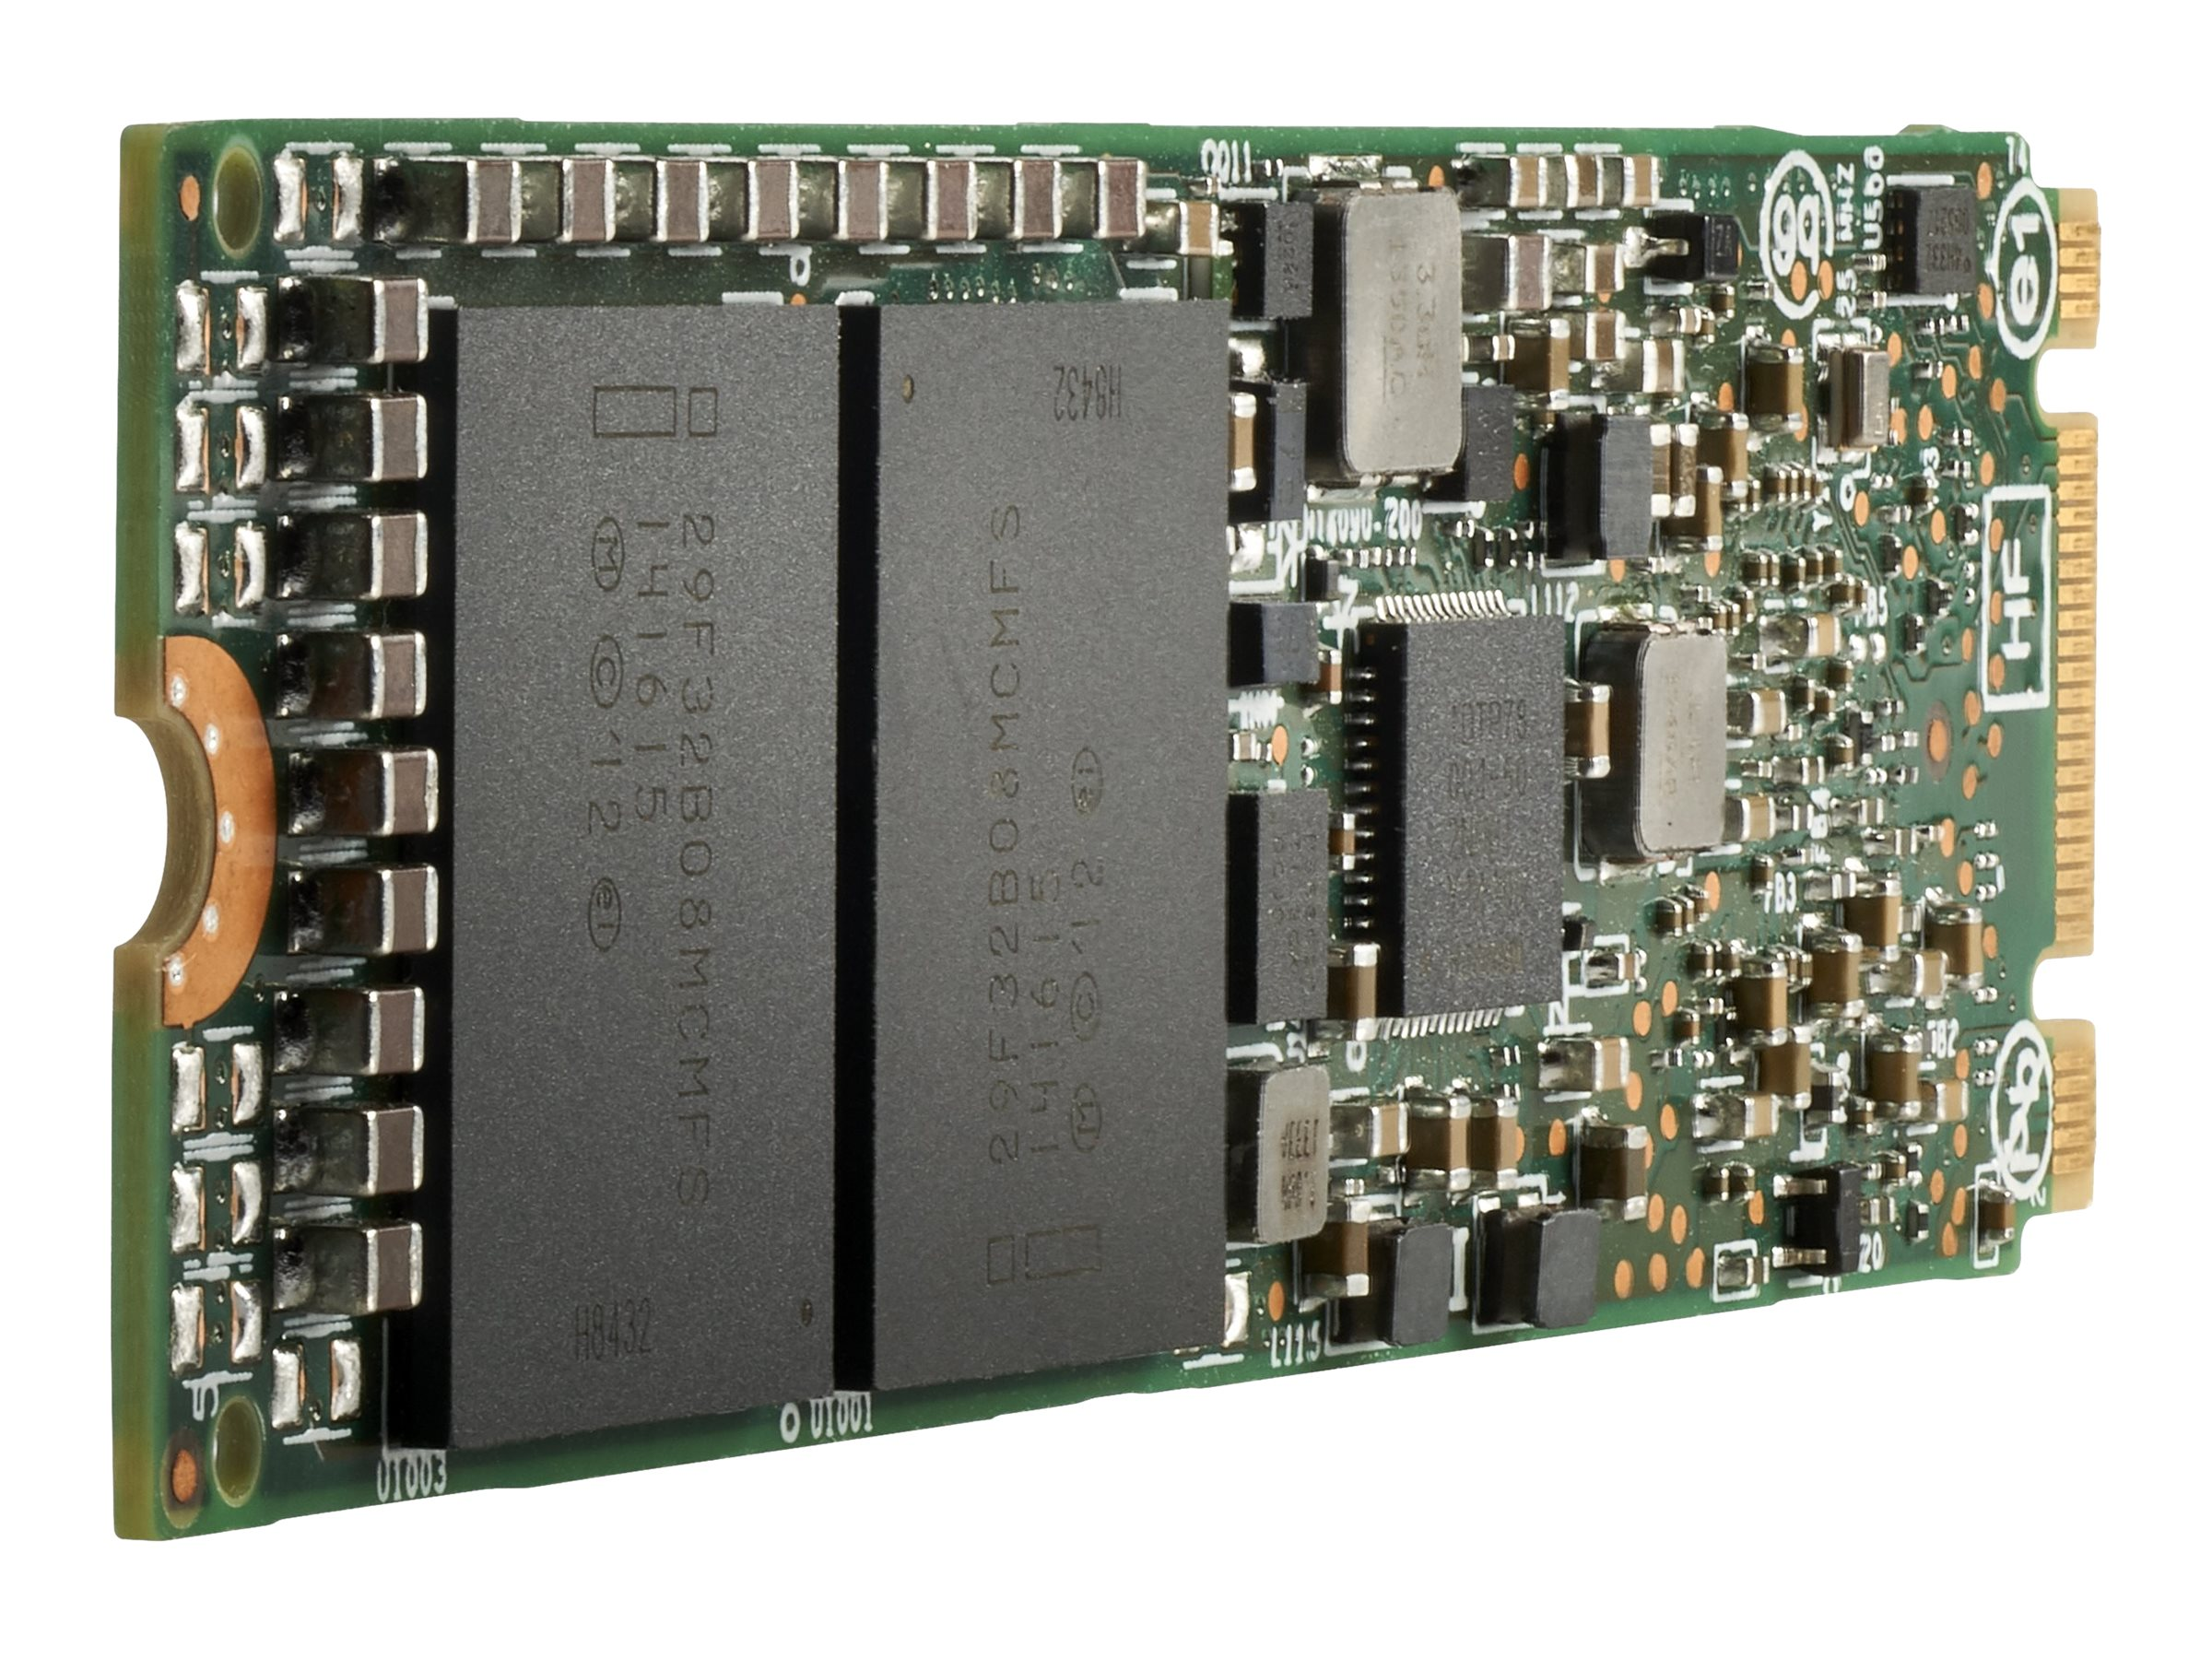 HPE Read Intensive - Solid-State-Disk - 960 GB - intern - M.2 22110 - PCI Express x4 (NVMe)